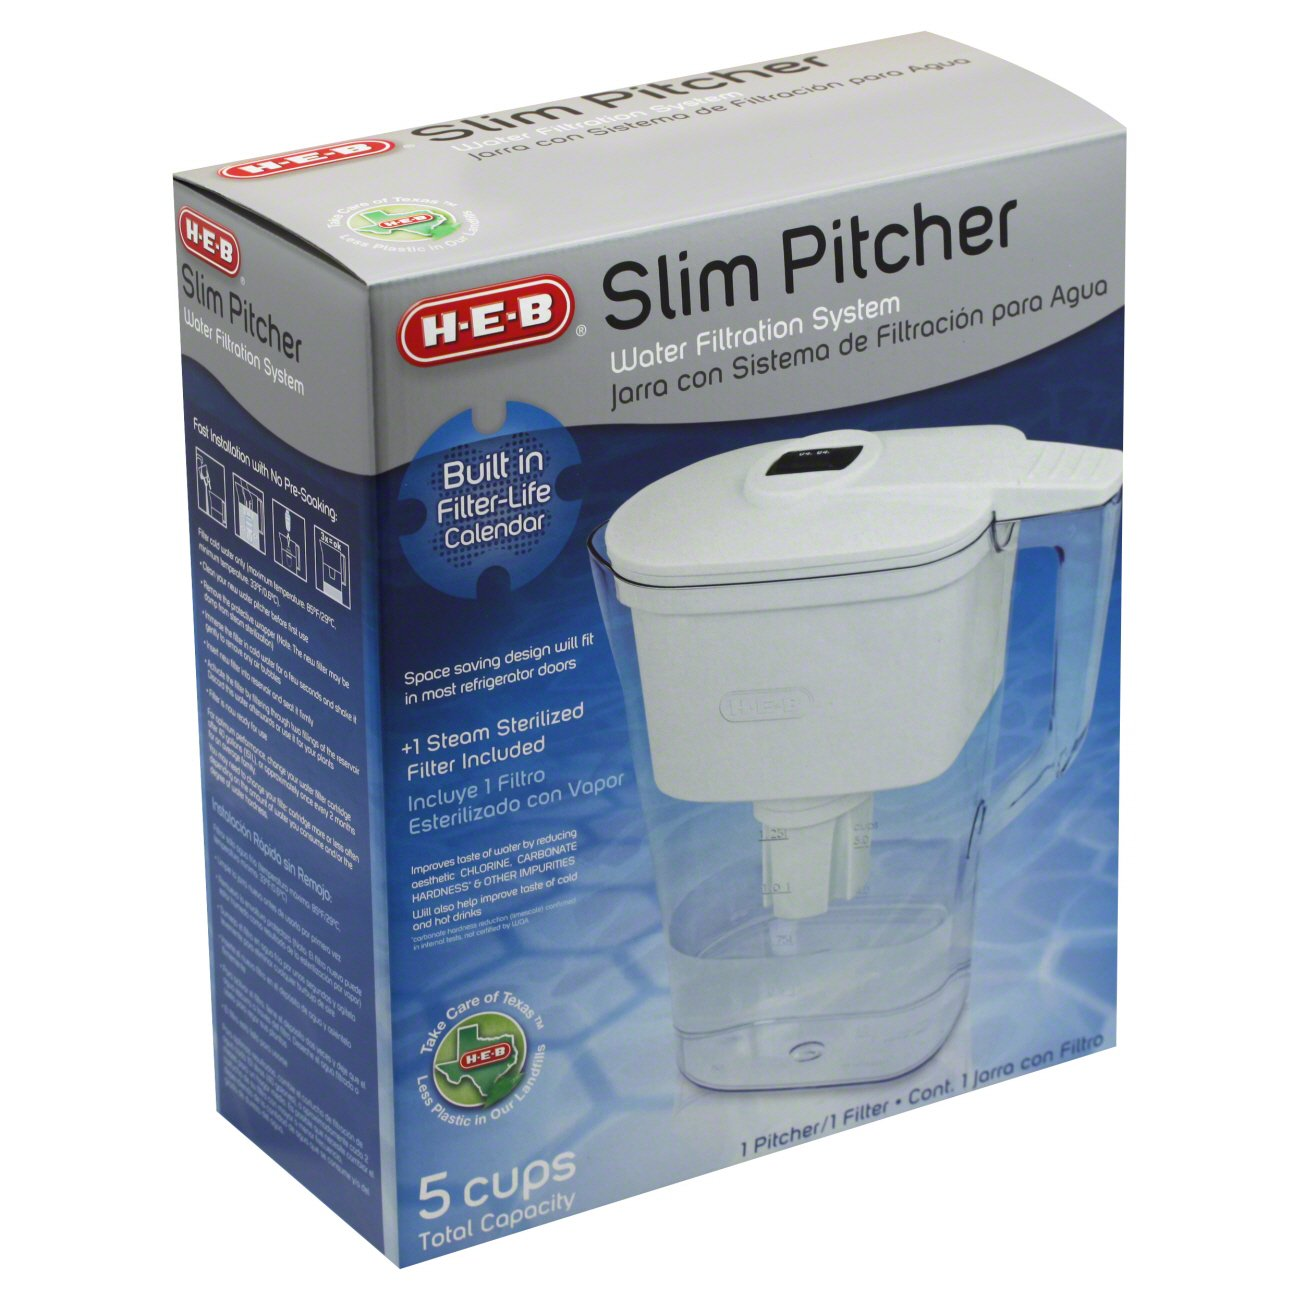 water filter pitcher. Perfect Pitcher Hu2011Eu2011B 5u2011Cup Slim Pitcher Water Filtration System U2011 Shop Filters At HEB Intended Filter